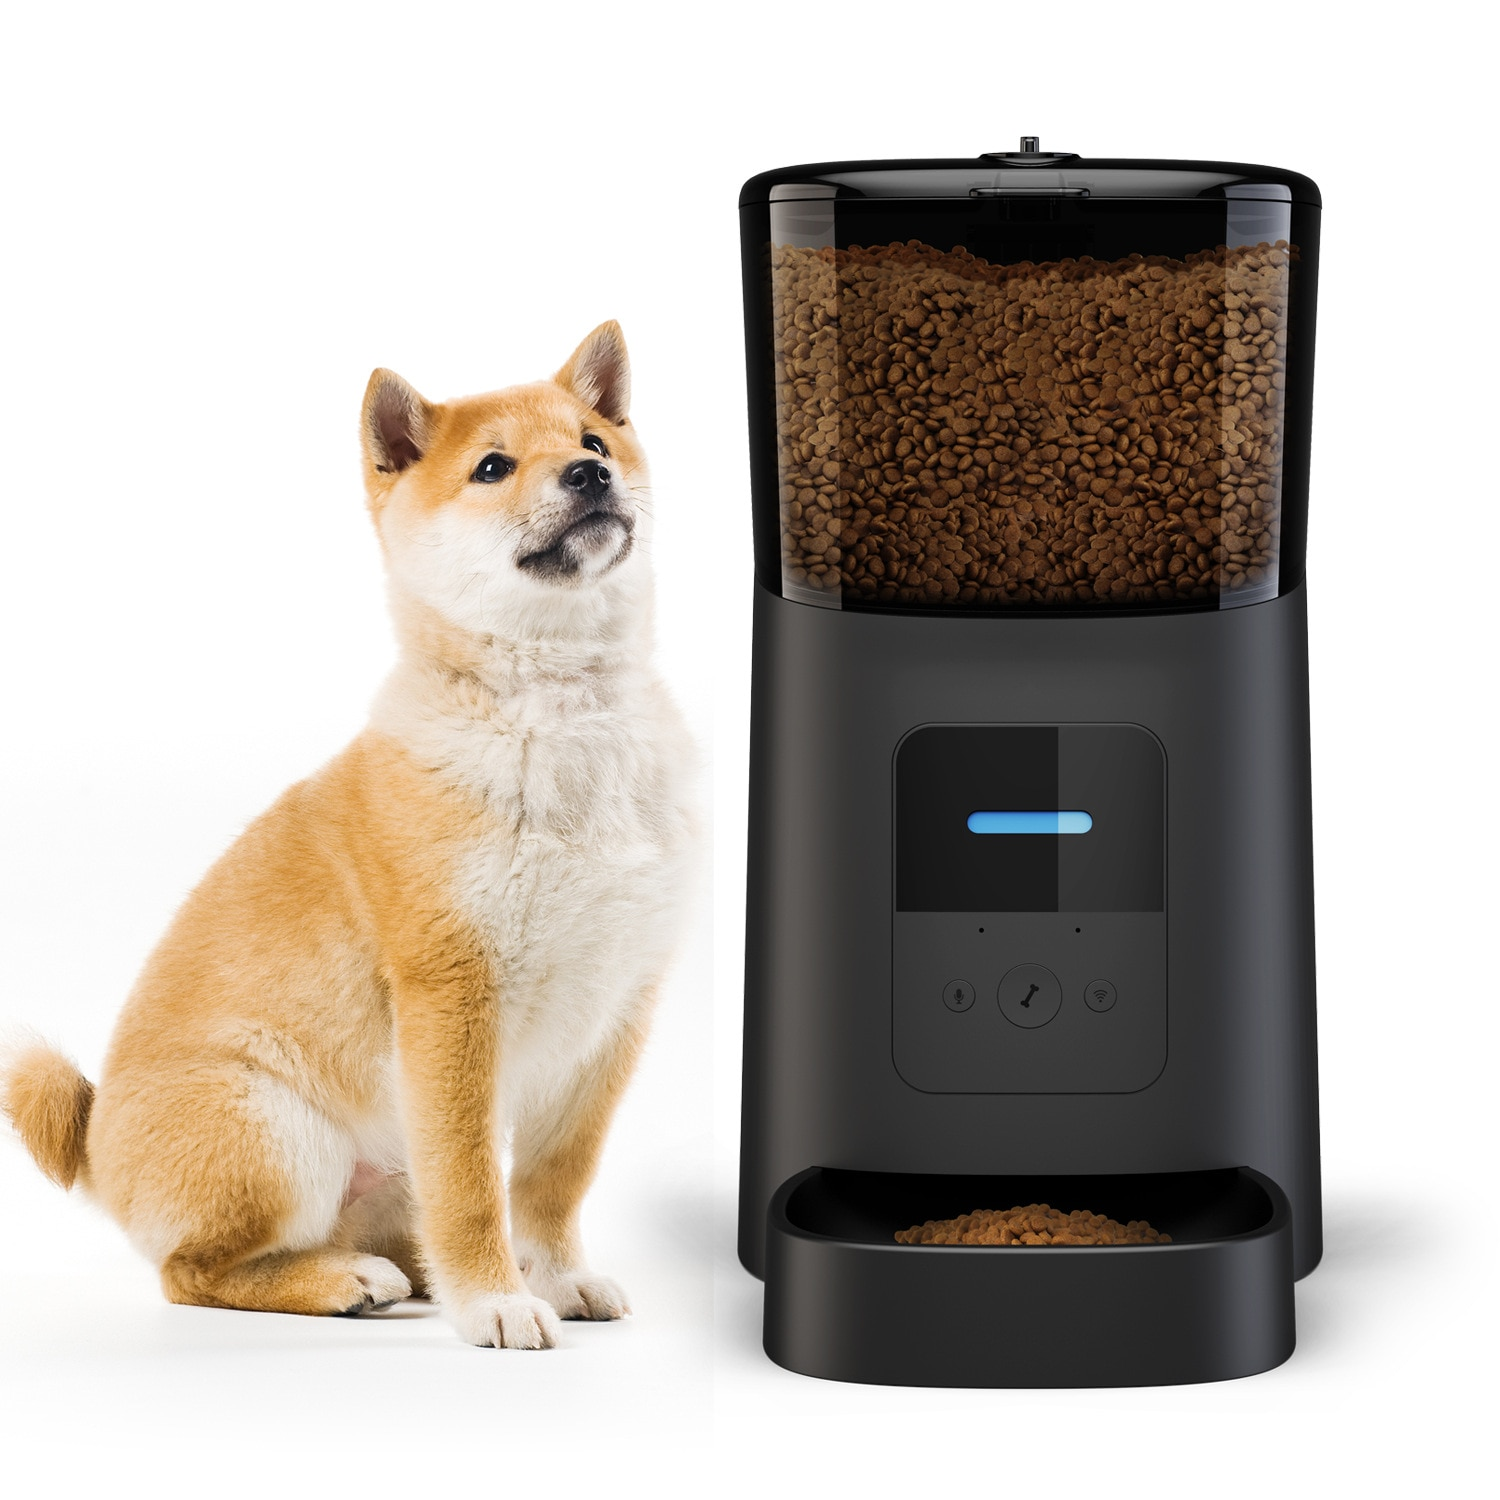 Smart Automatic Slow Feeder Dog Bowl Large Elevated Cat Food Dispenser Pet Water Automatic Comedero Perro Dog Supplies BY50GW